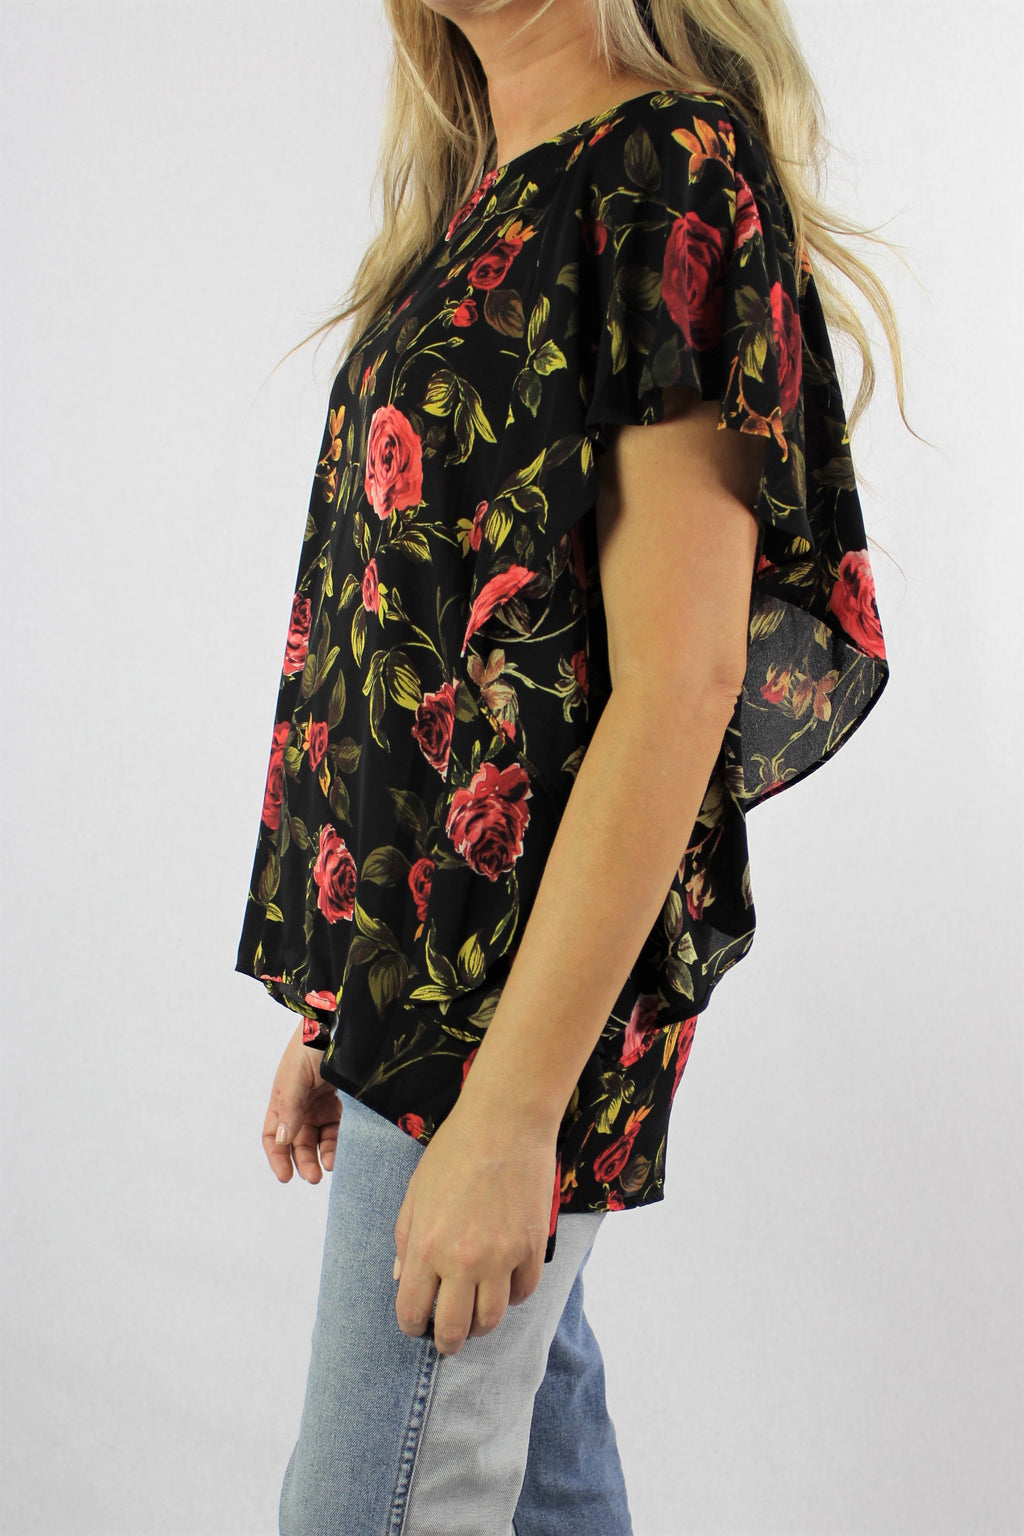 Women's Floral Print Flared Short Sleeve Top